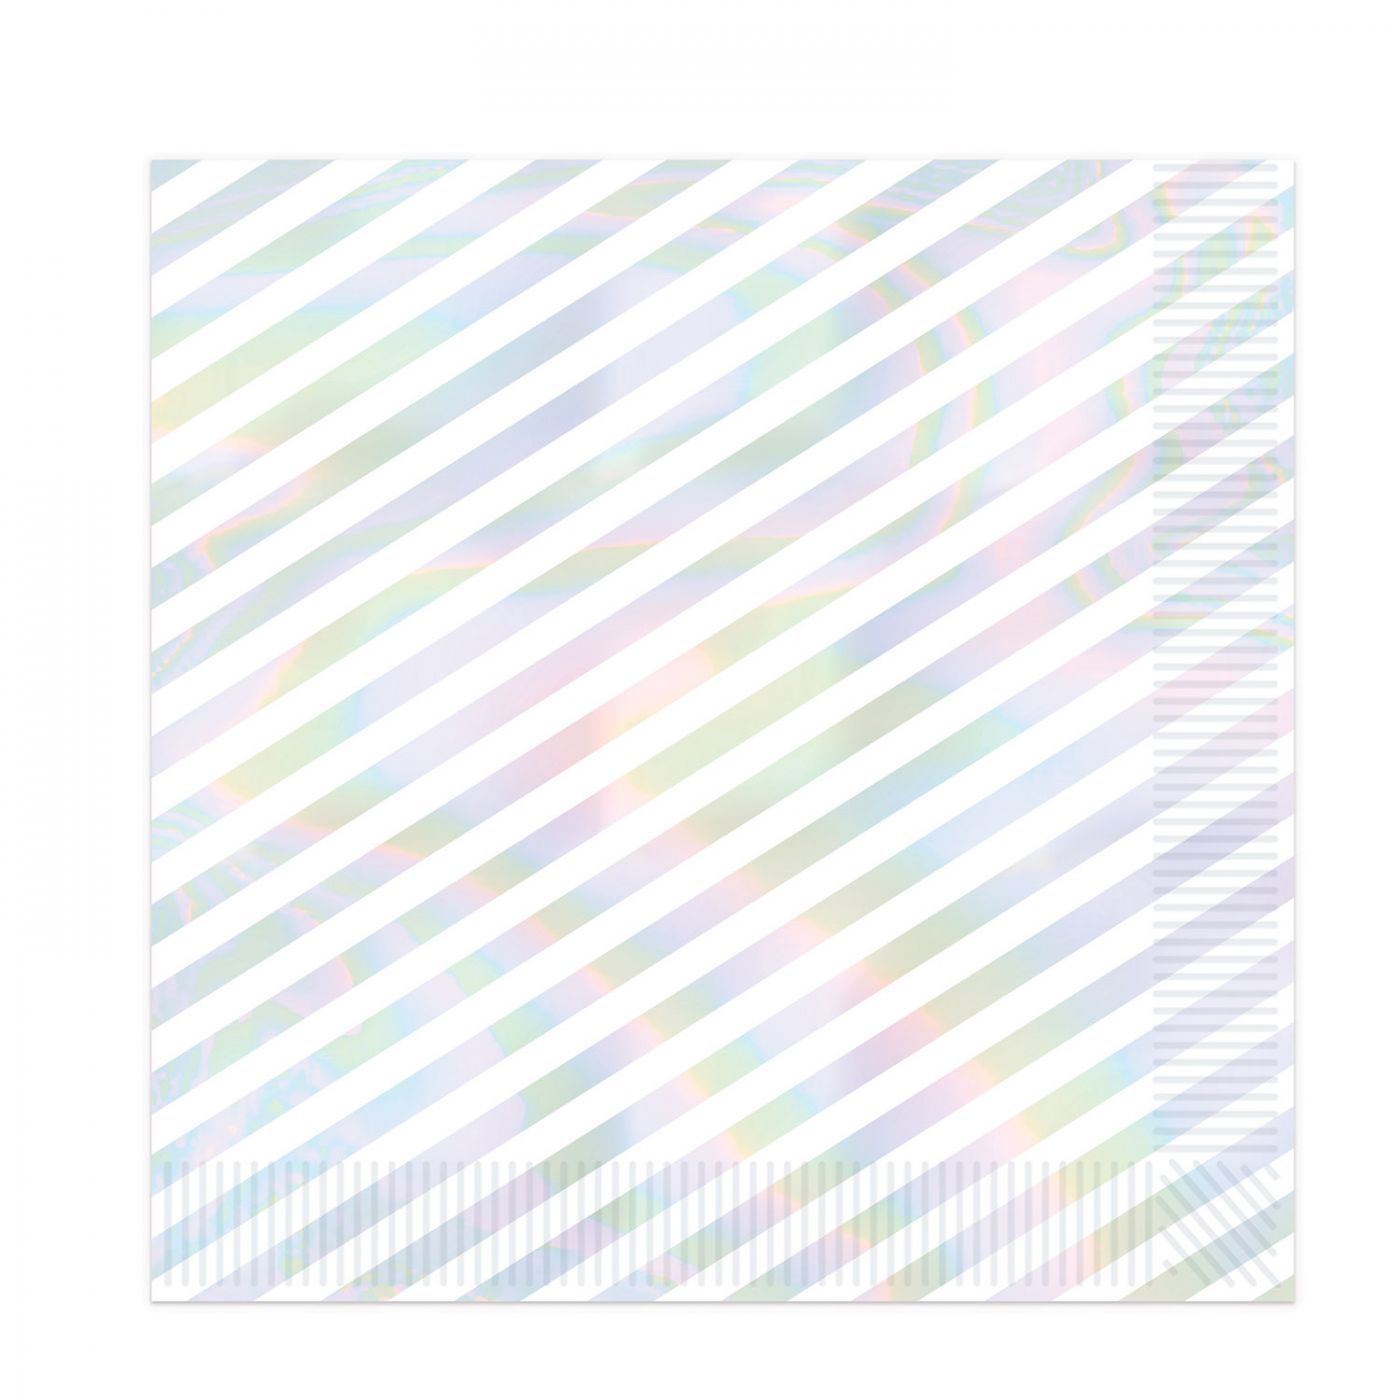 Iridescent Stripes Beverage Napkins image